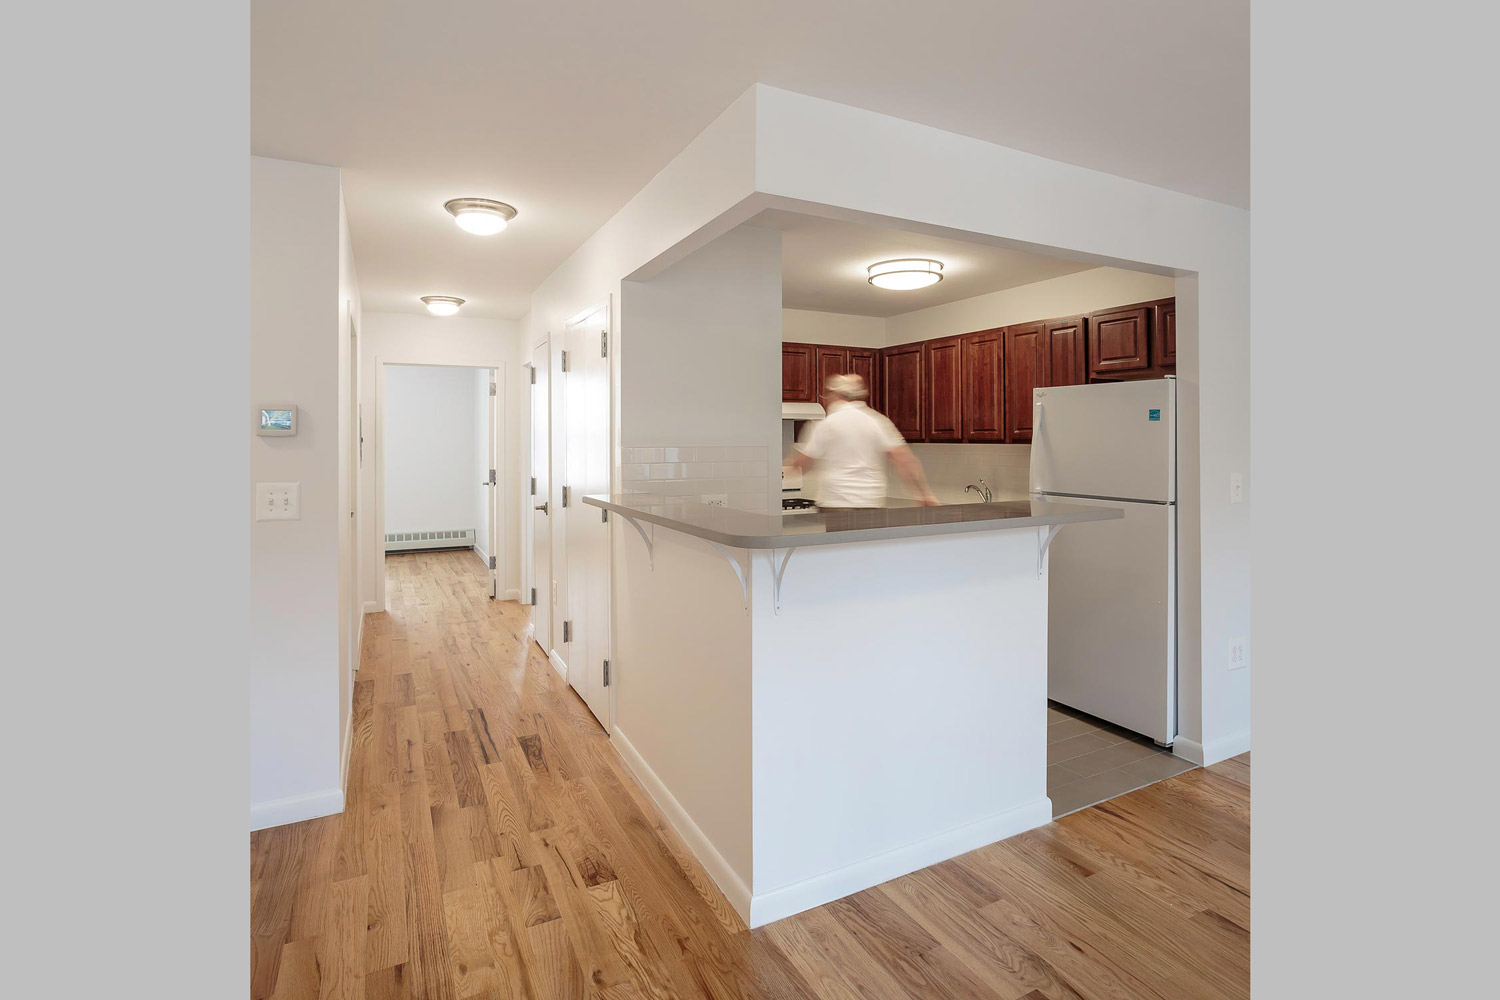 Sustainable features at Dean Street Residences include energy efficient lighting, fixtures and appliances.